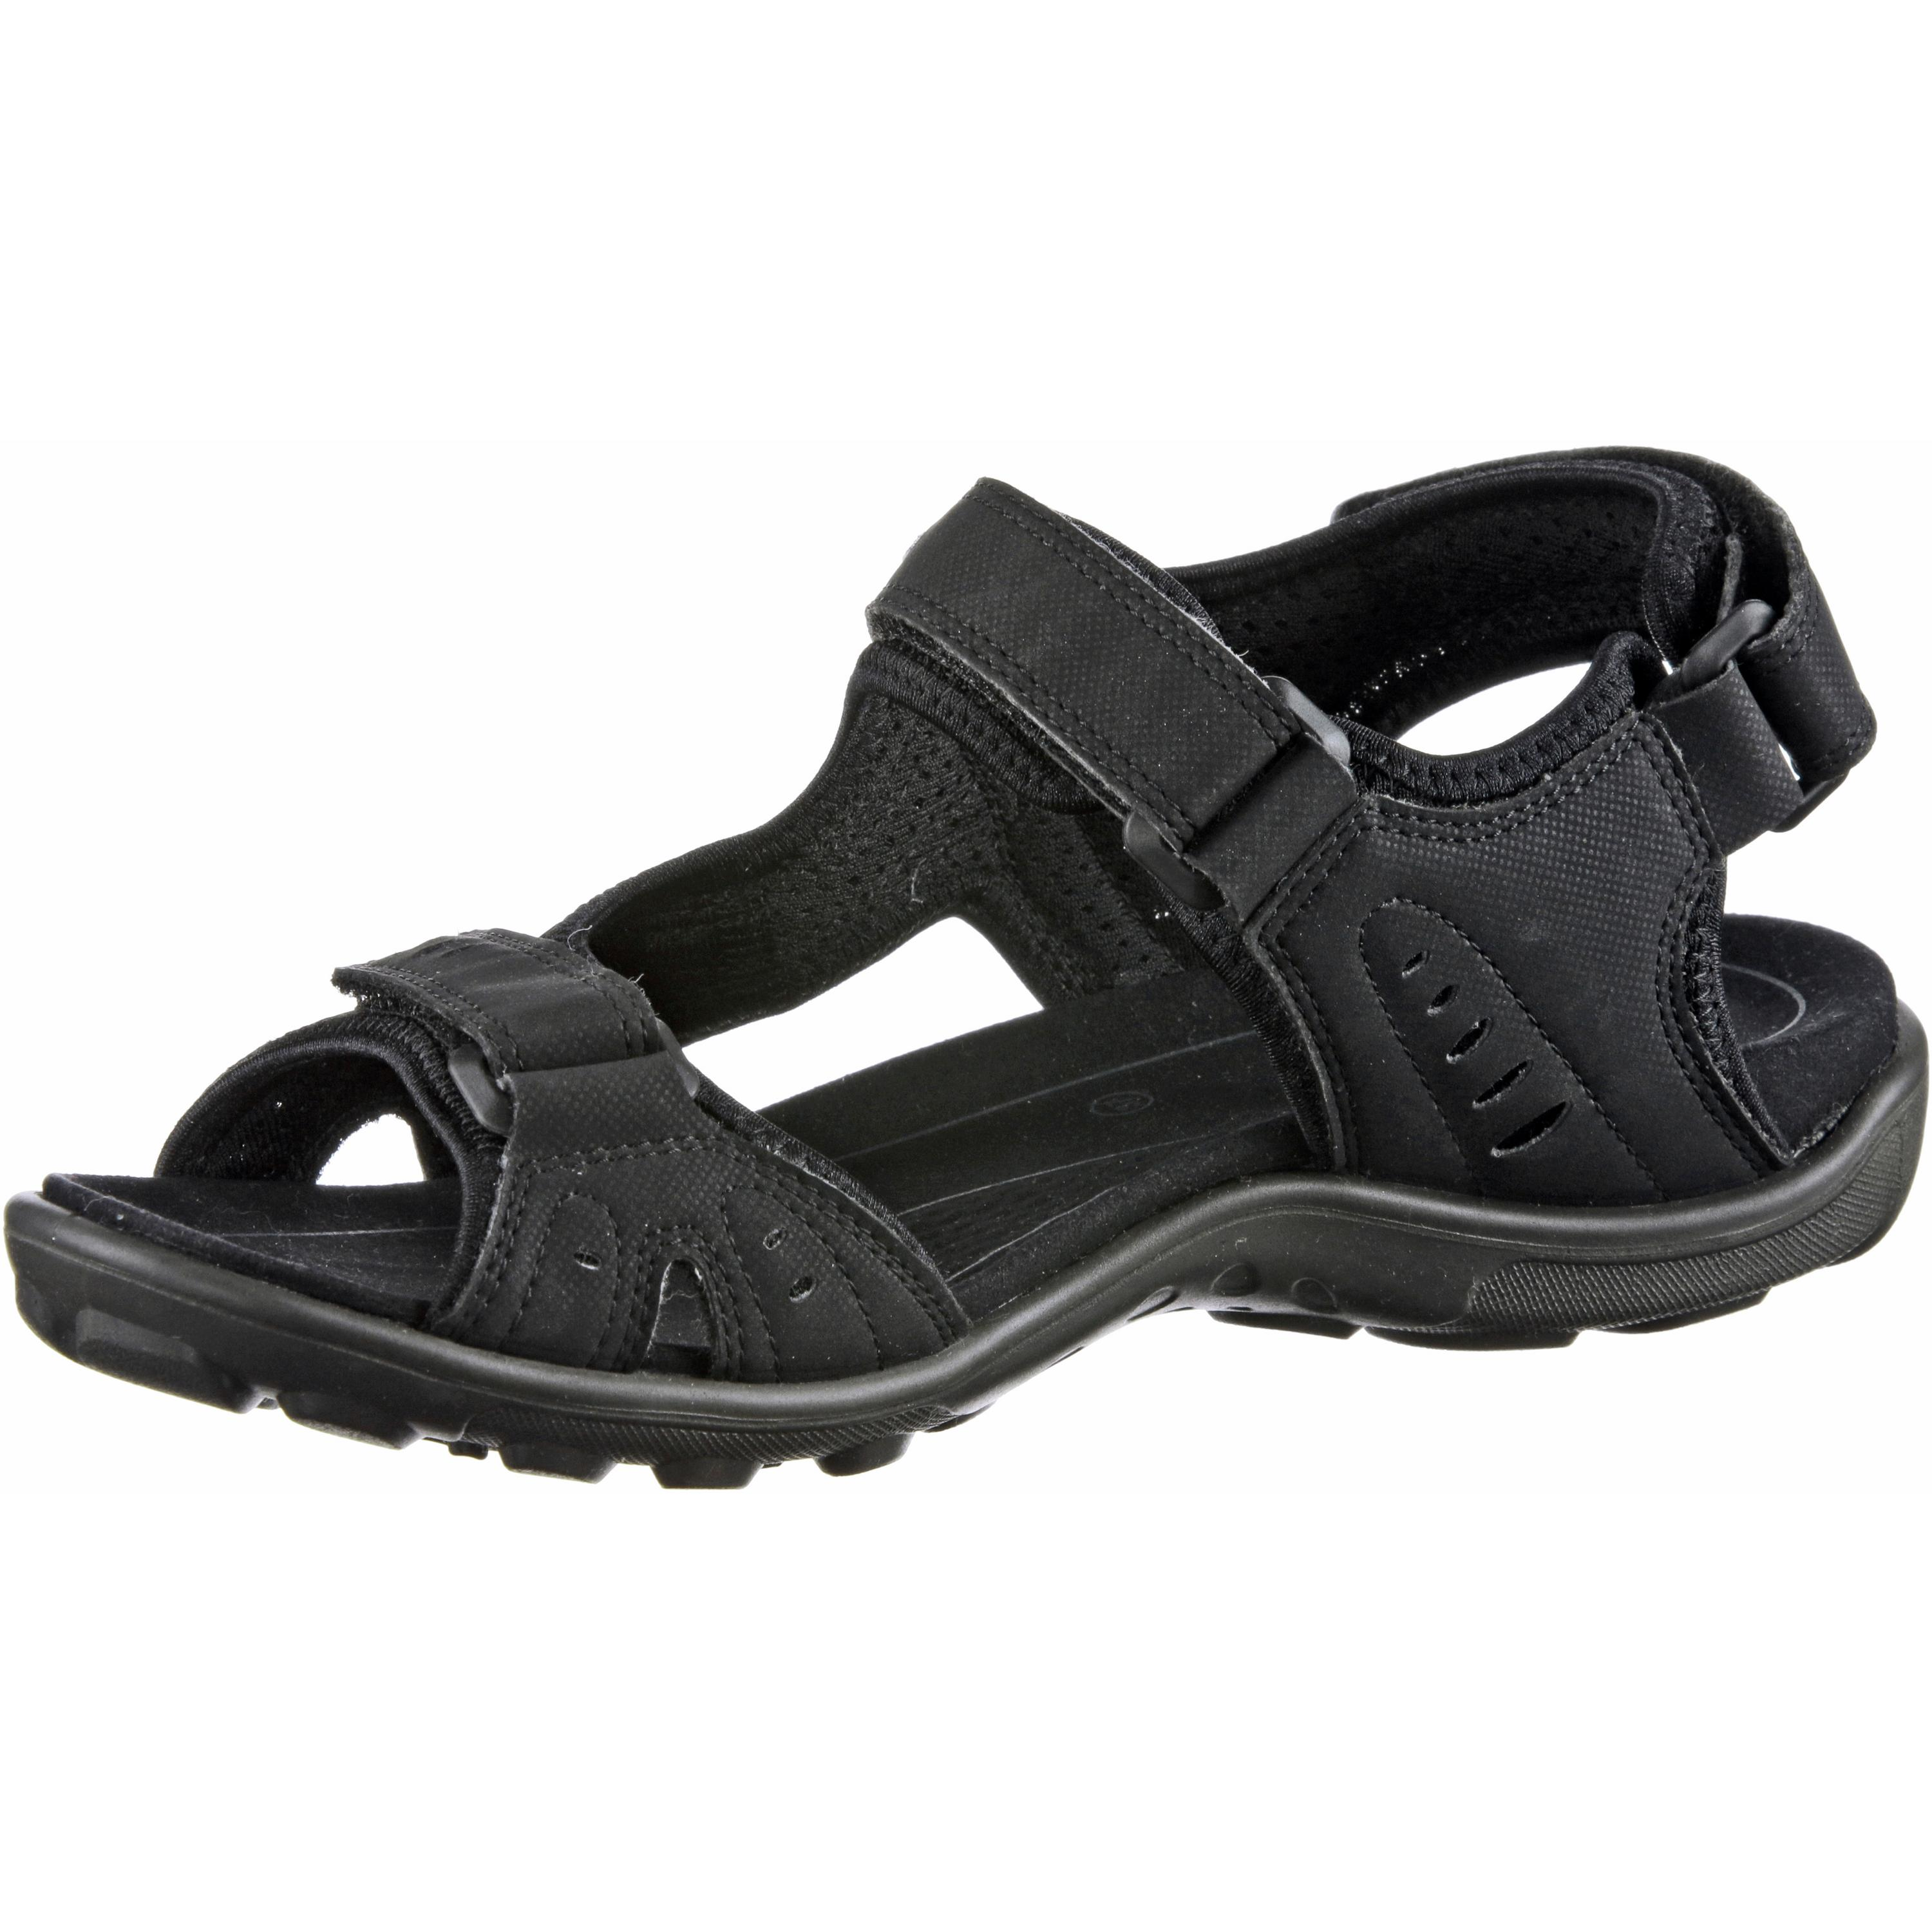 ECCO All Terrain Lite Outdoorsandalen Damen